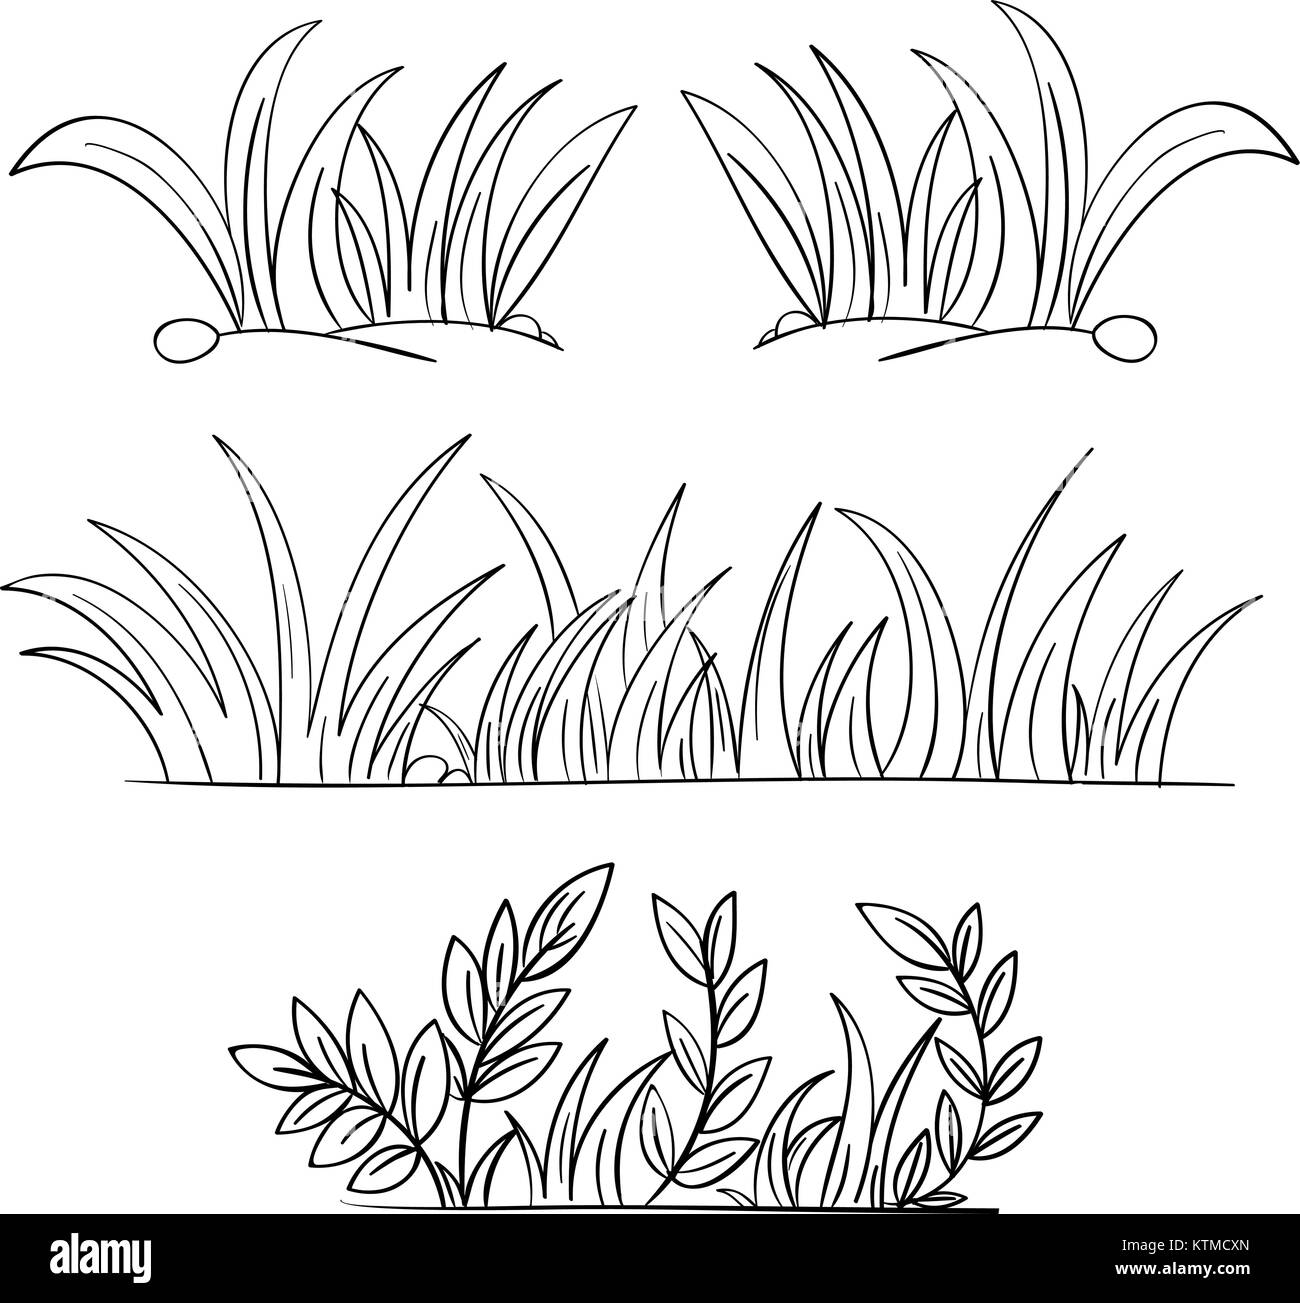 Illustration Of Grass And Plant Outlines Stock Vector Art